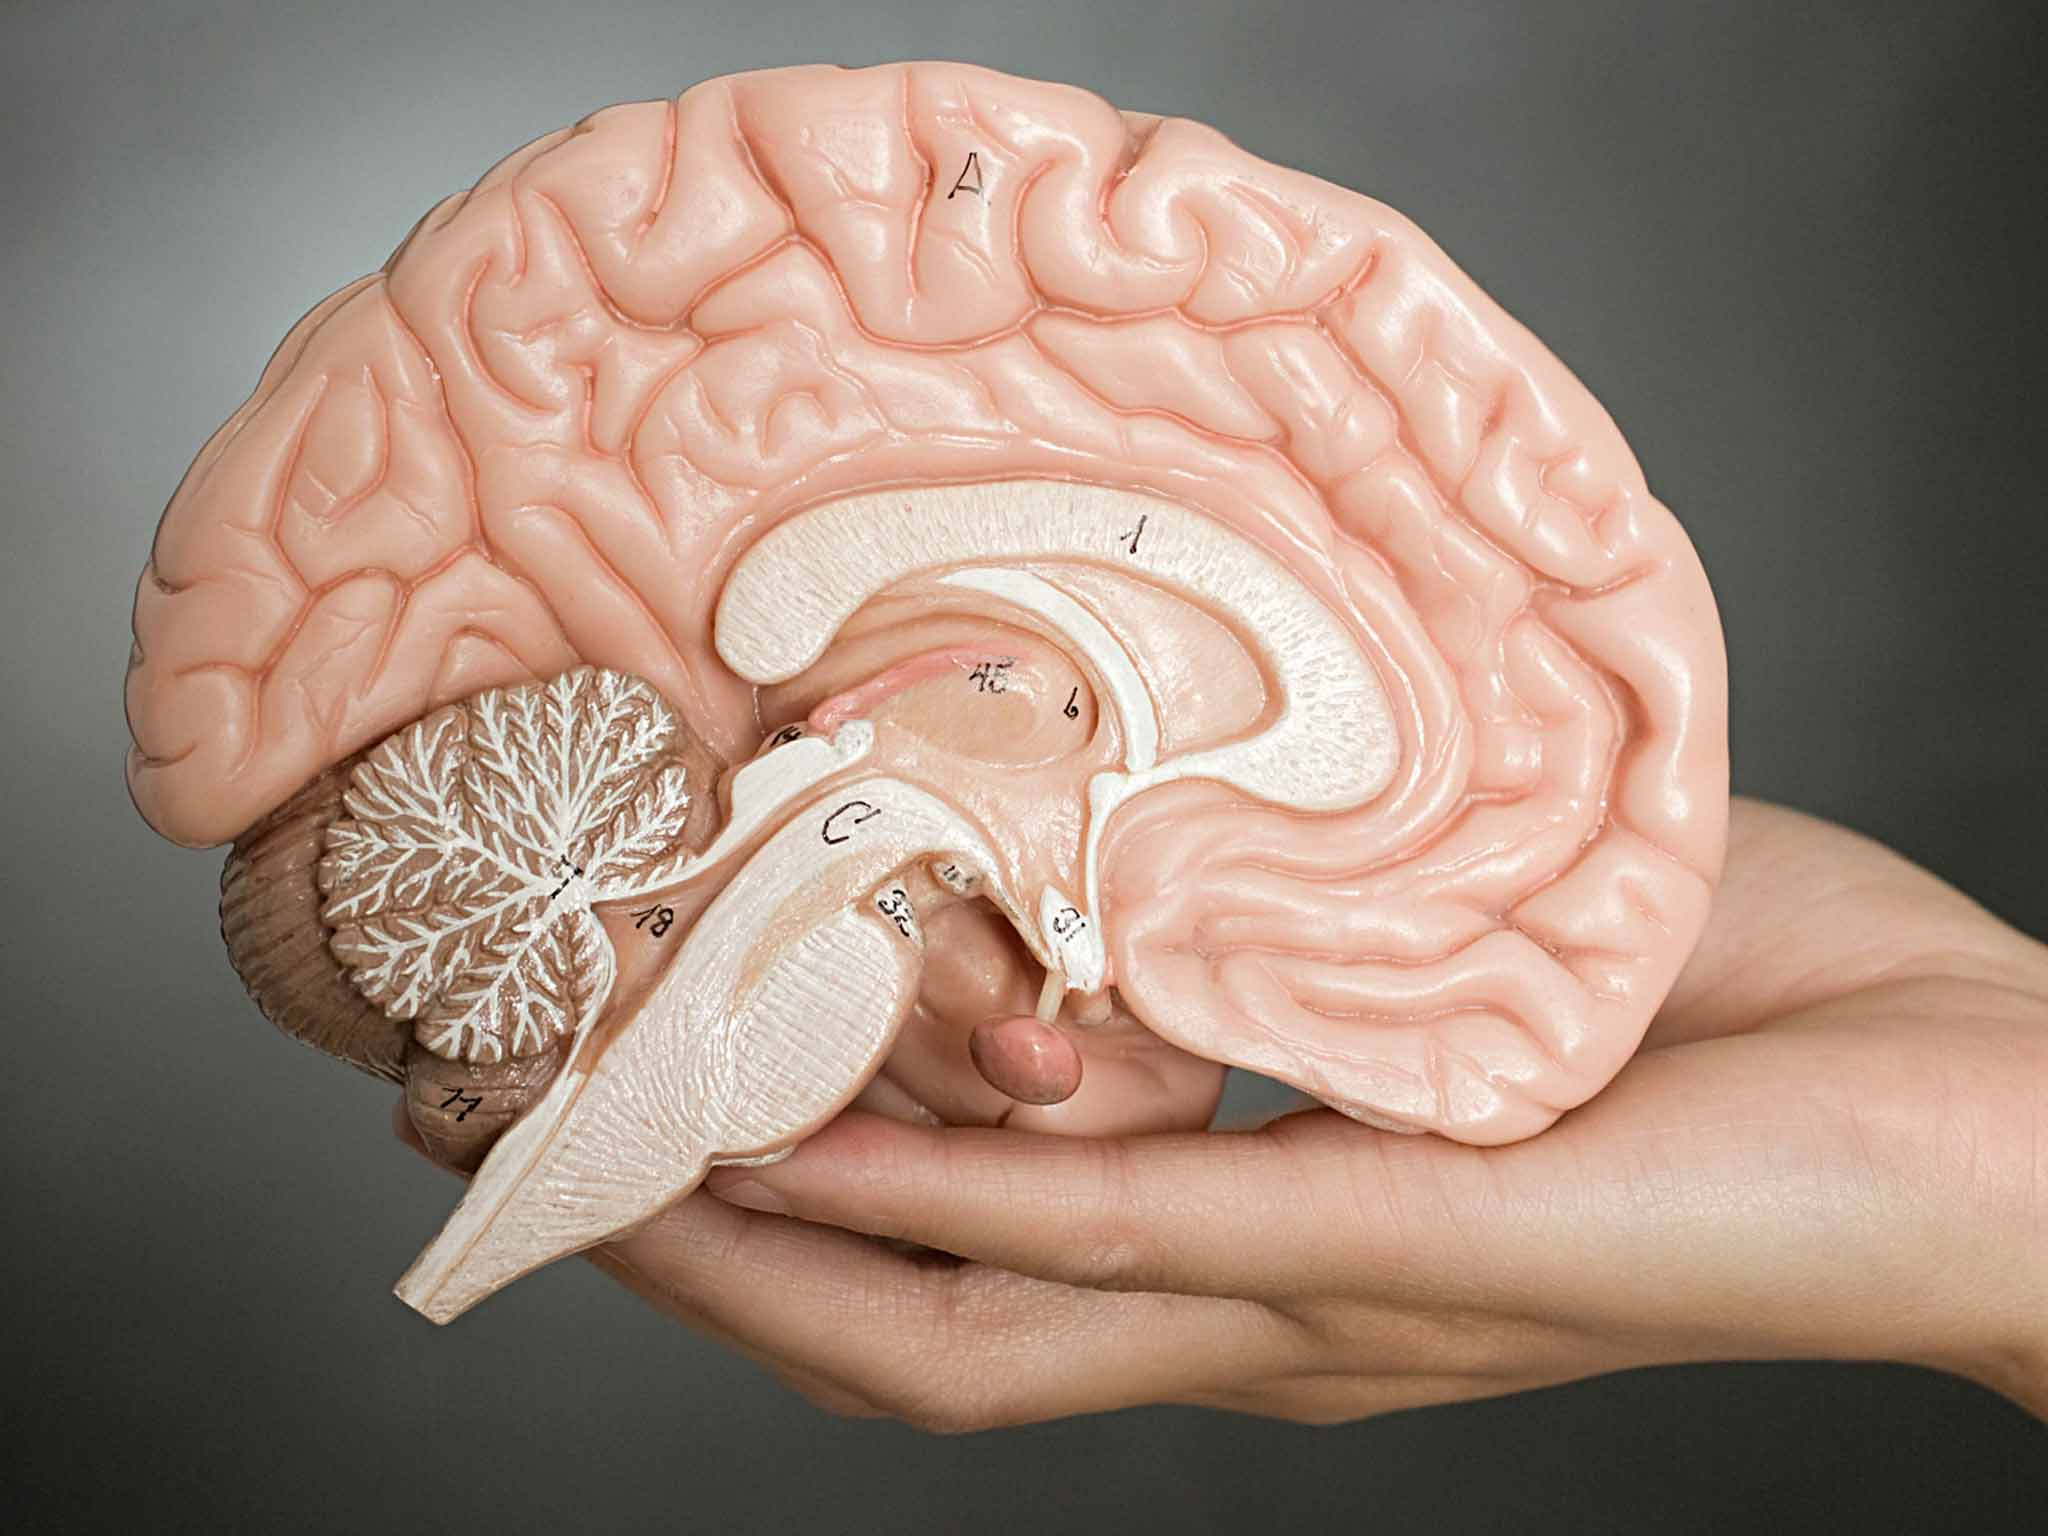 'Mind-blowing' discovery could revolutionise our understanding of how brain works